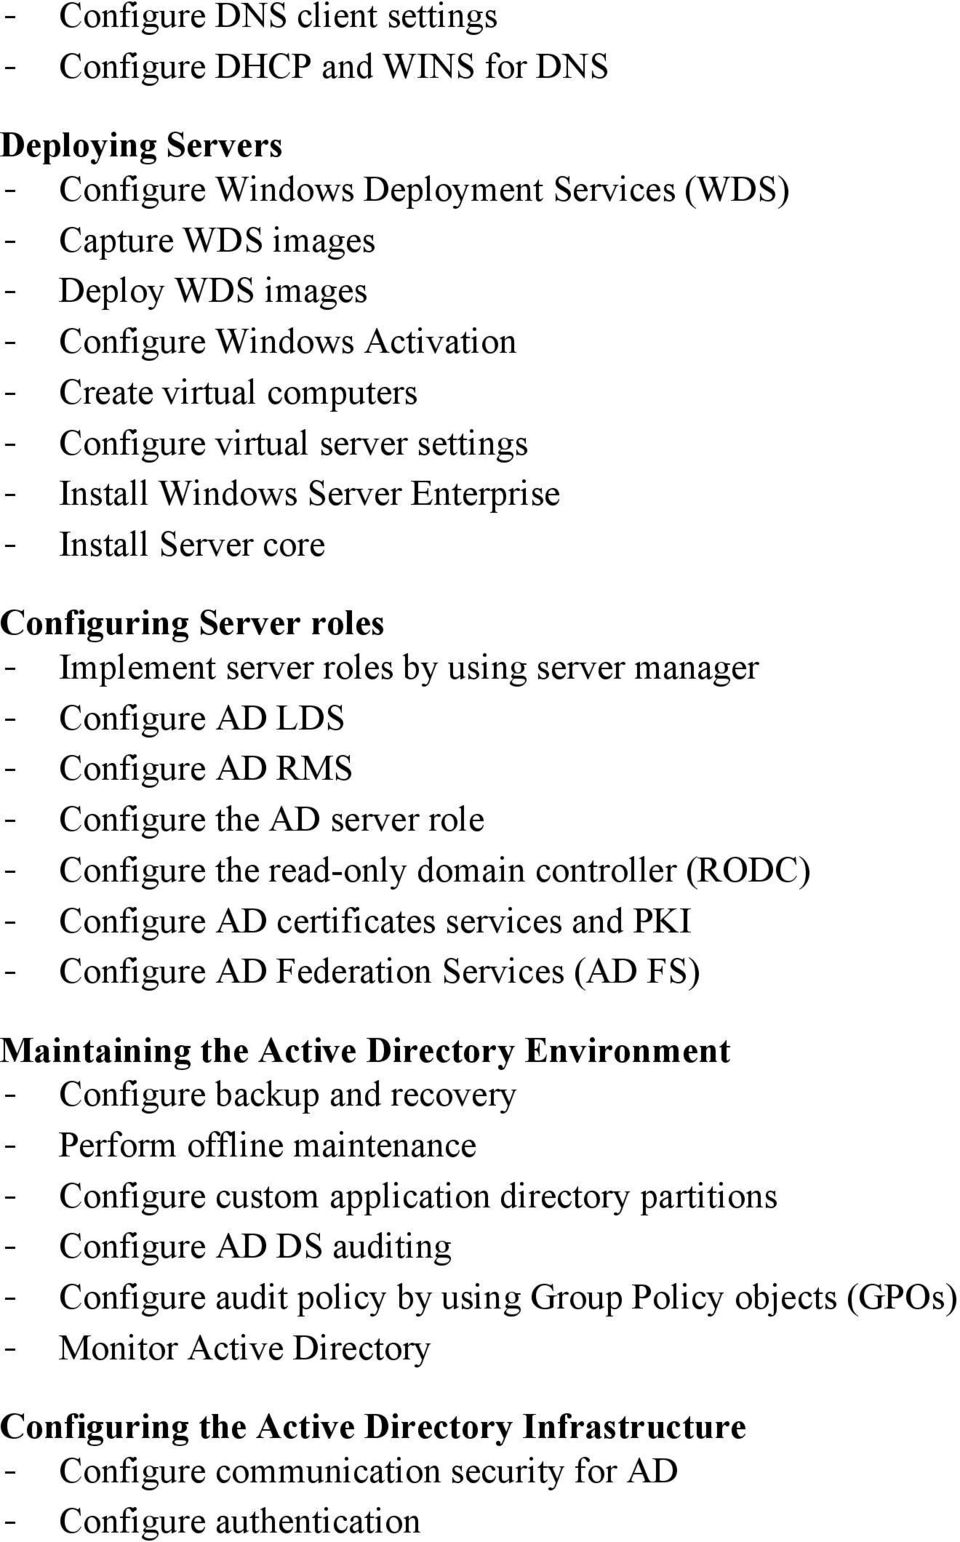 manager - Configure AD LDS - Configure AD RMS - Configure the AD server role - Configure the read-only domain controller (RODC) - Configure AD certificates services and PKI - Configure AD Federation